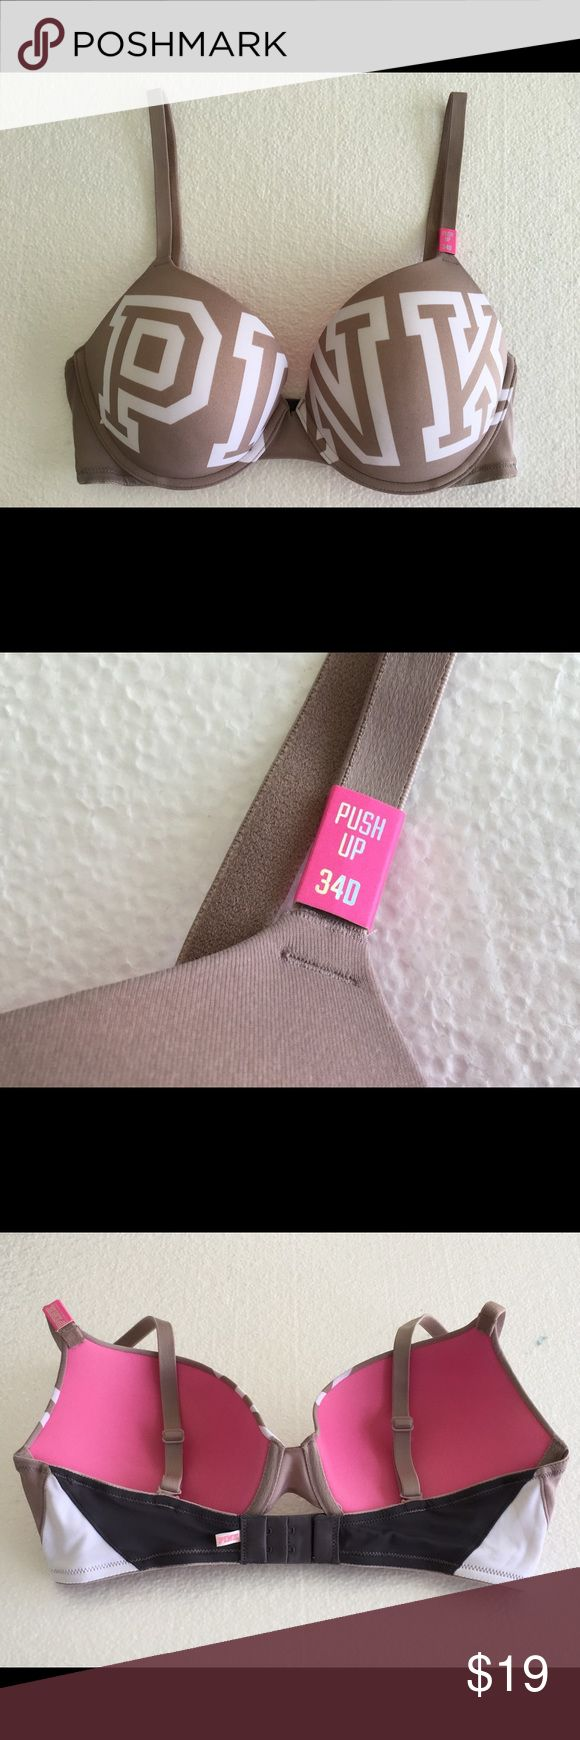 """Victoria's Secret PINK """"Wear Everywhere"""" Push-up VS PINK """"Wear Everywhere"""" Push-up Bra w/Signature PINK Logo. Sz. 34D Brand new. Never worn. This is a current item still selling on Victoria's Secret website now for $34.95 + $2.78 tax + $8.00 shipping for a total of $45.73. PINK Victoria's Secret Intimates & Sleepwear Bras"""